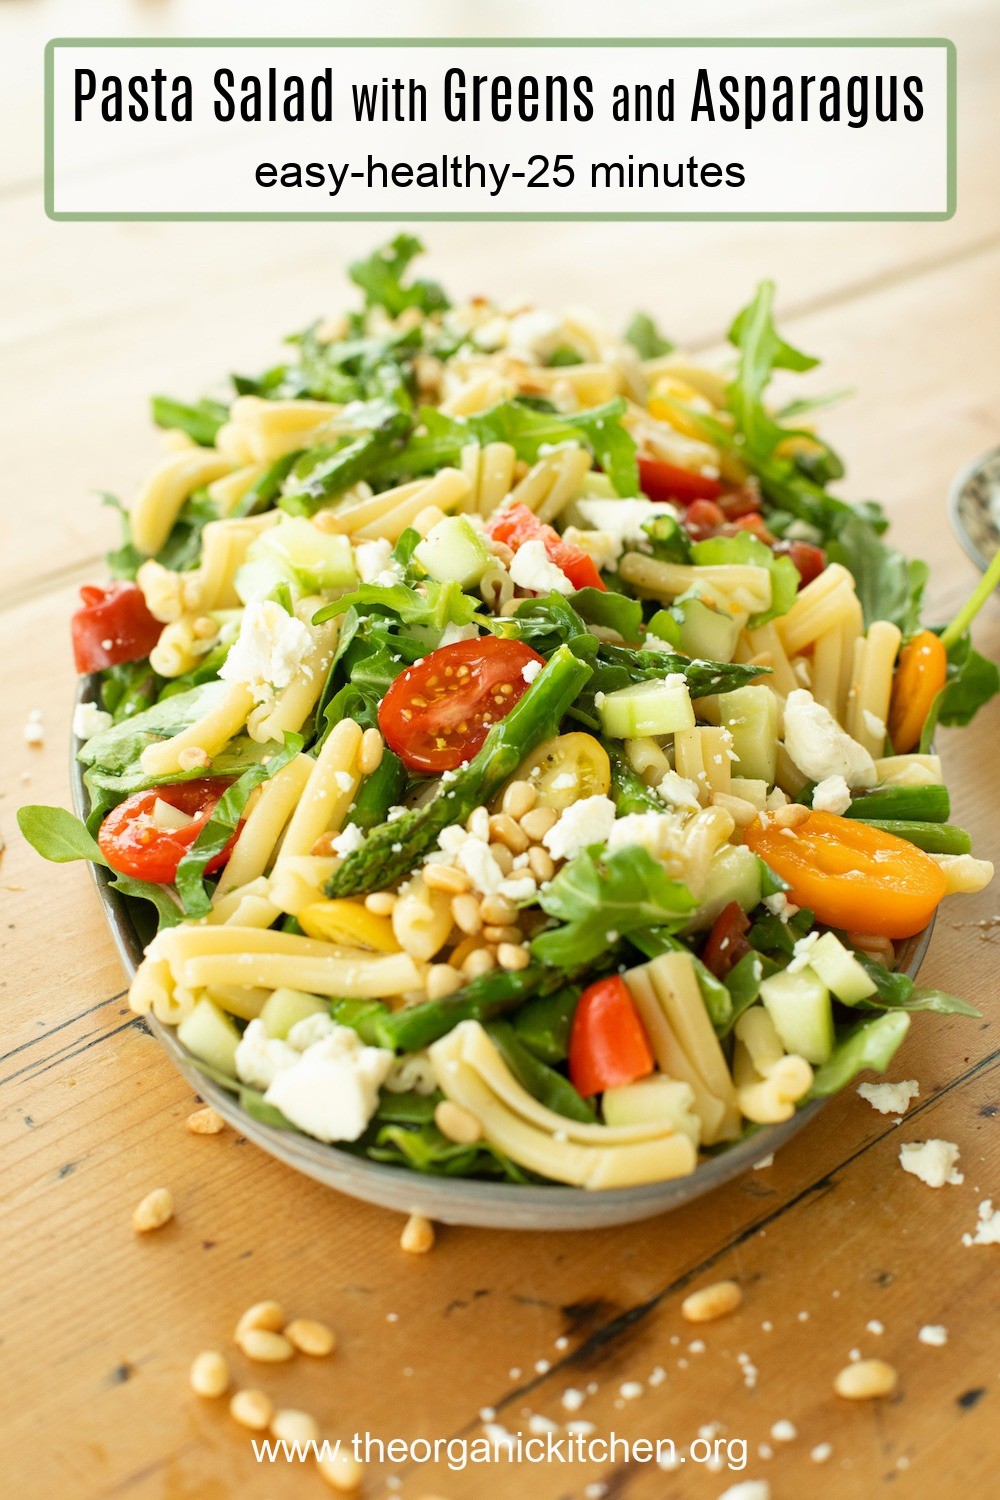 A platter of Pasta Salad with Greens and Asparagus garnished with pine nuts and feta